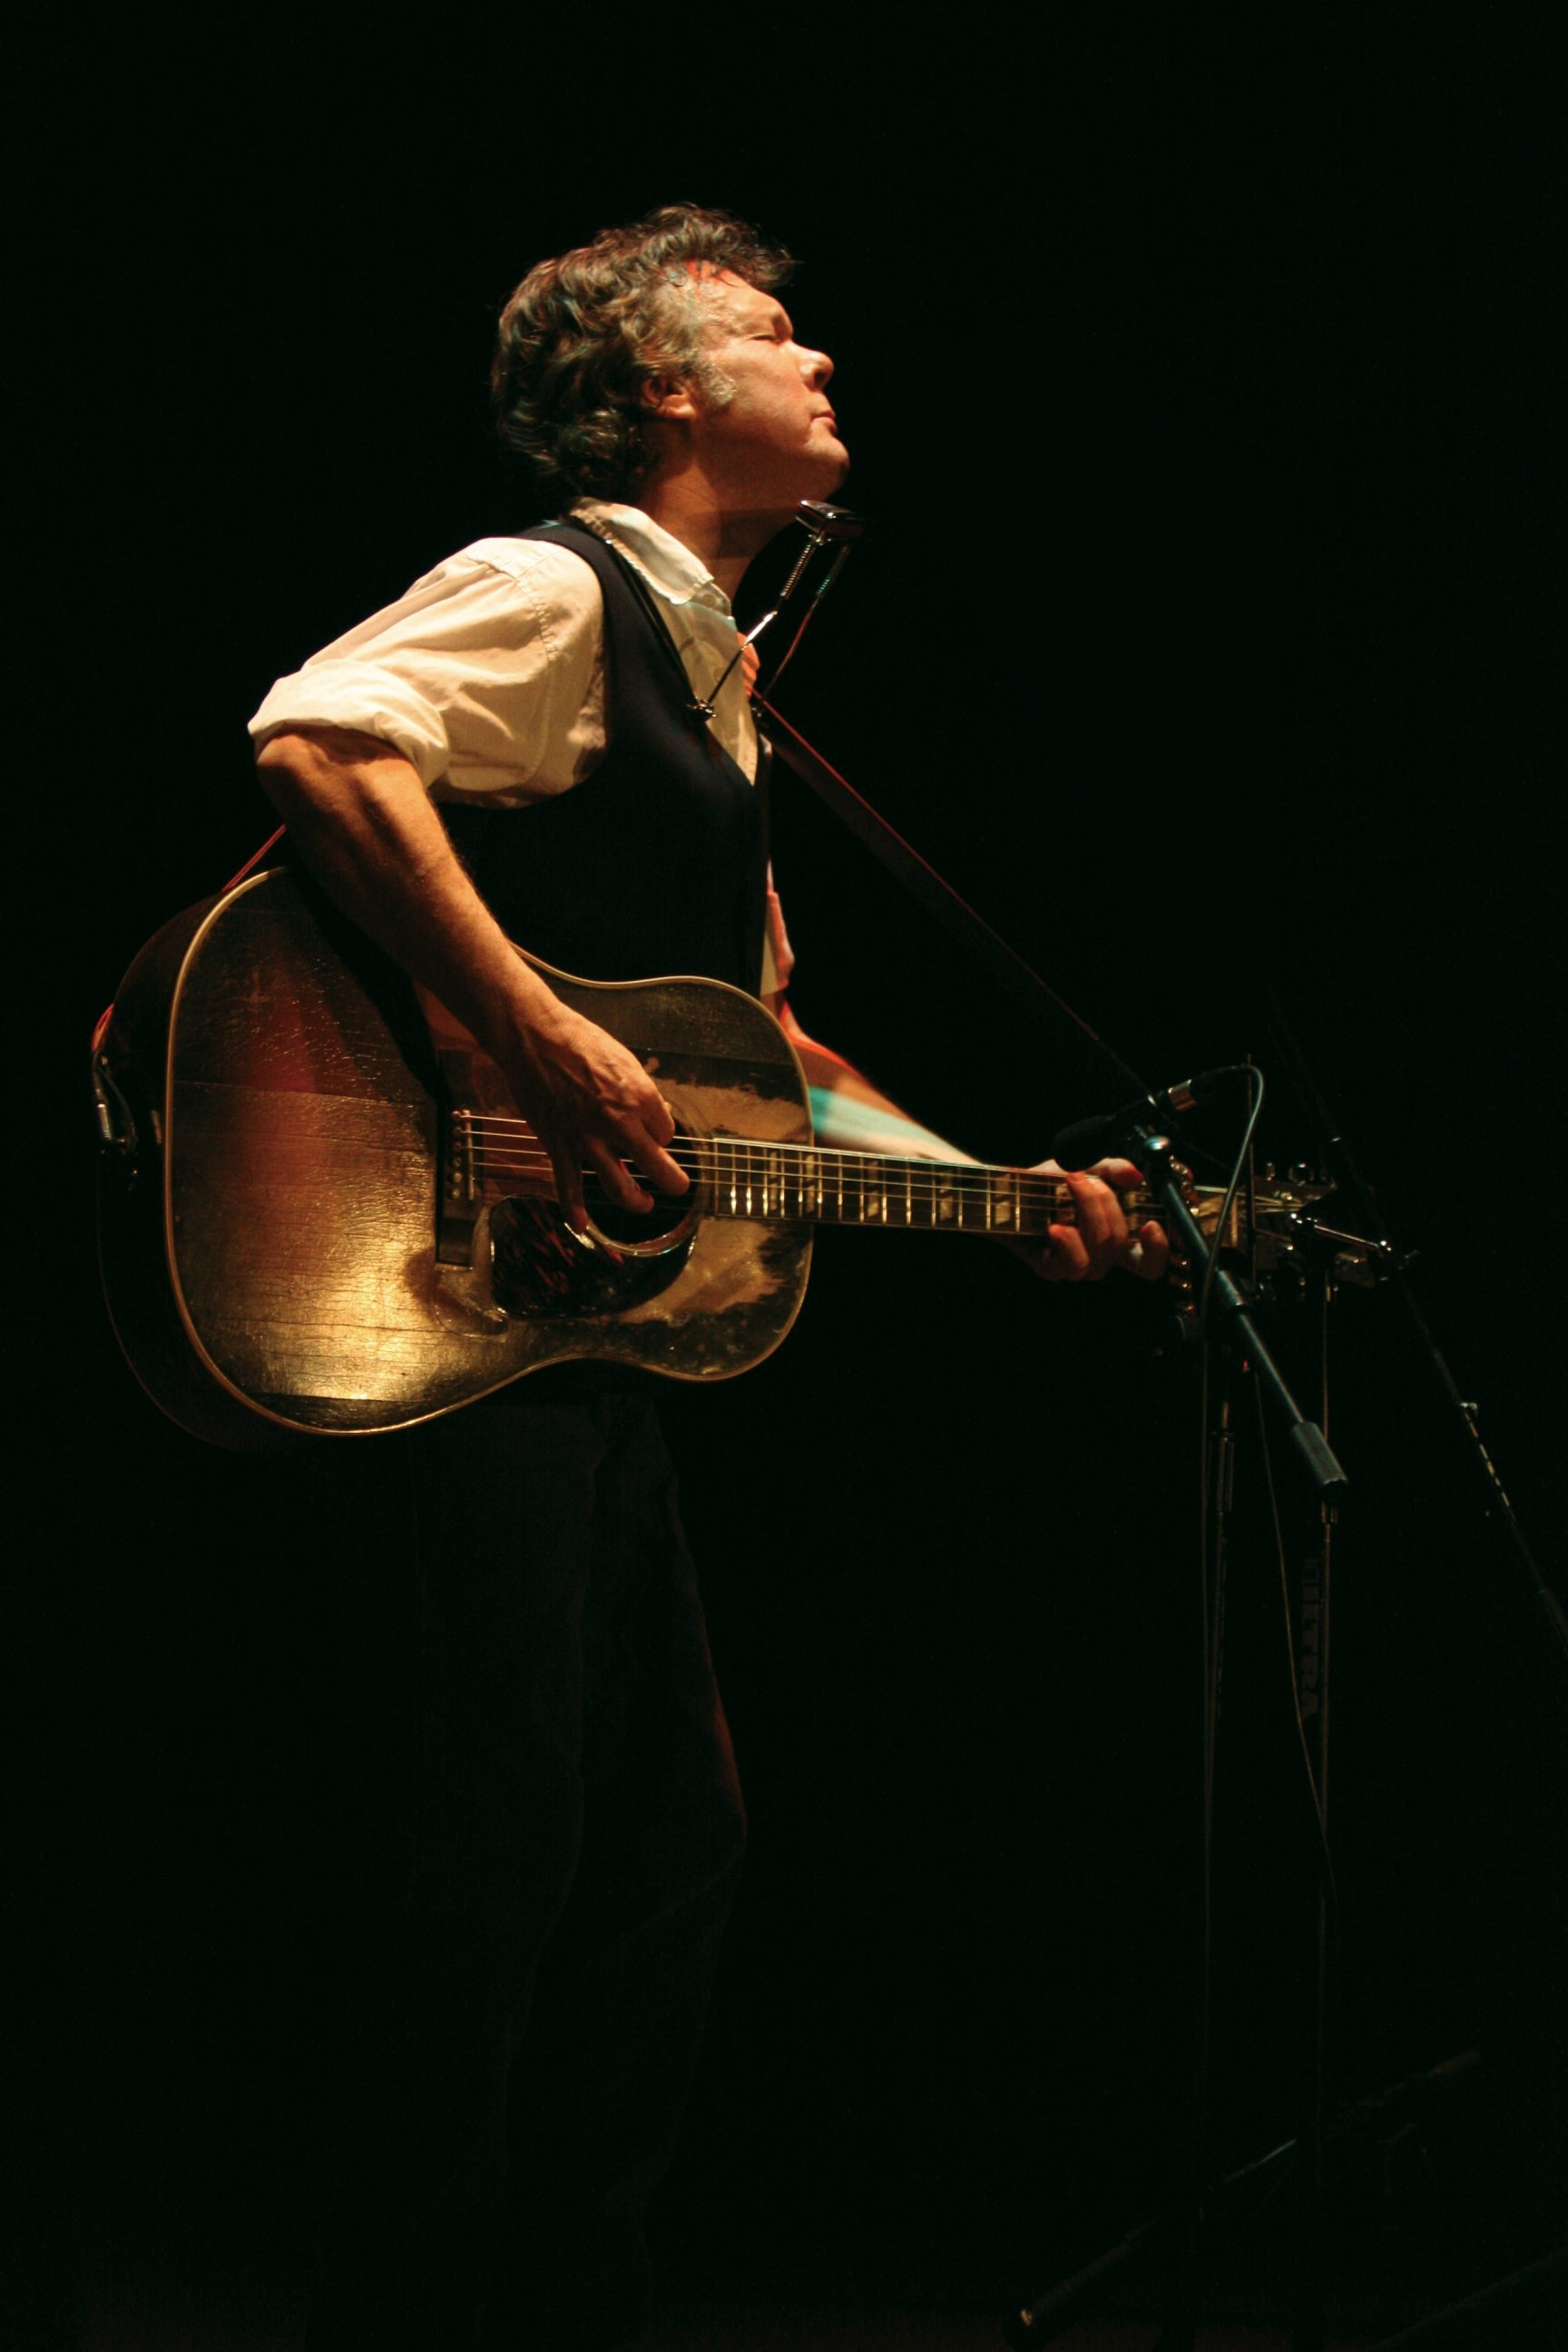 Steve Forbert will play the 189 Public House in East Aurora on May 29.